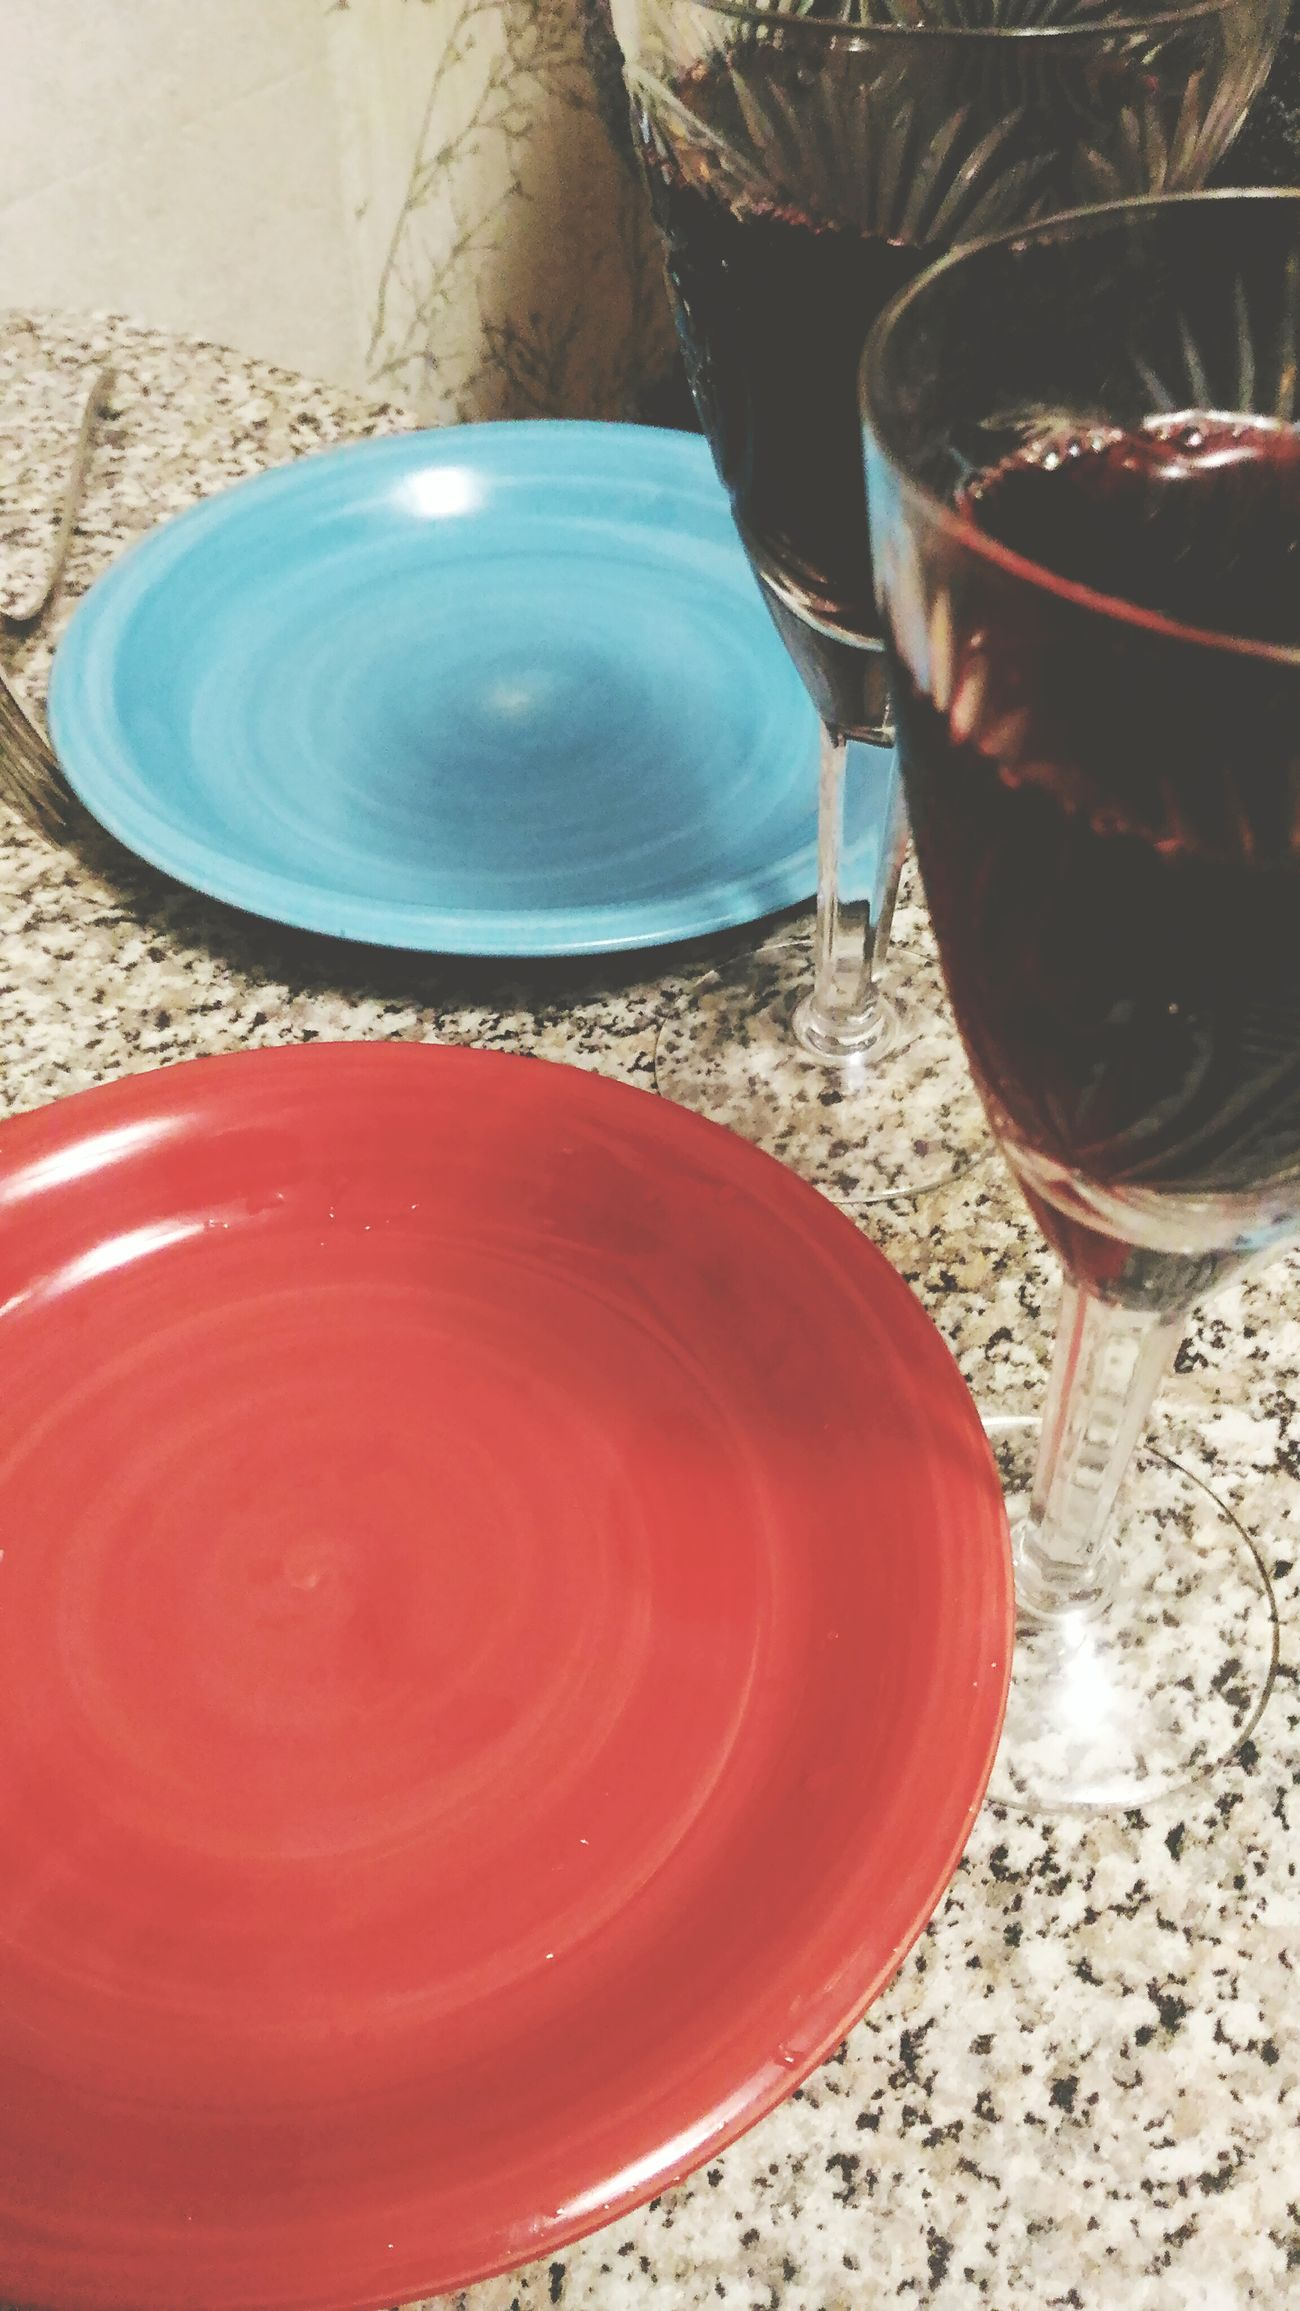 Dinnertime! Dinner With Friends Dinner Time Dinner Dinnertime Dinner Tonight Plates Plate Redplate Blueplate Wine Wineglass Wine Time Wine Glass Winetasting